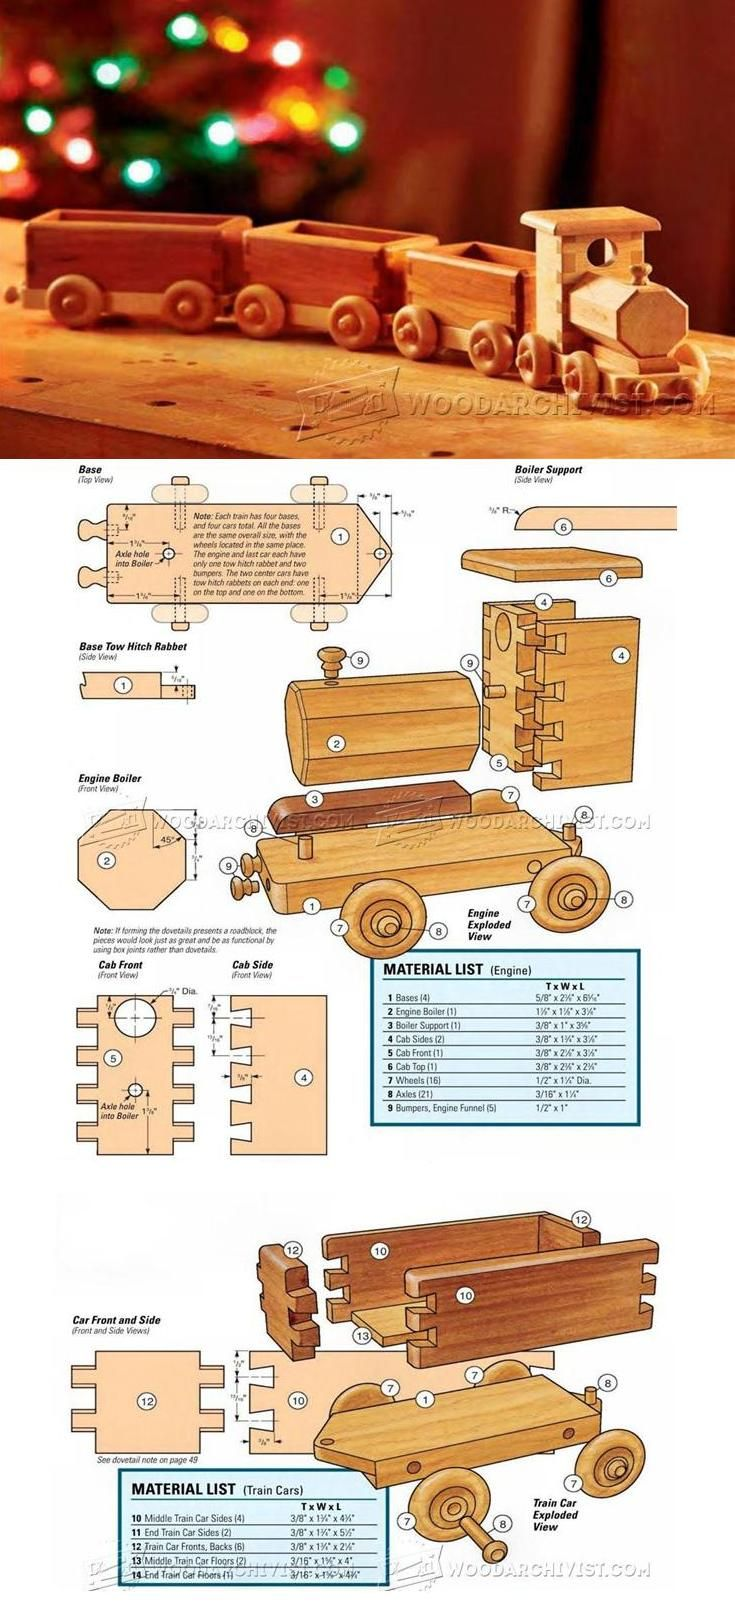 wooden train plans - children's wooden toy plans and